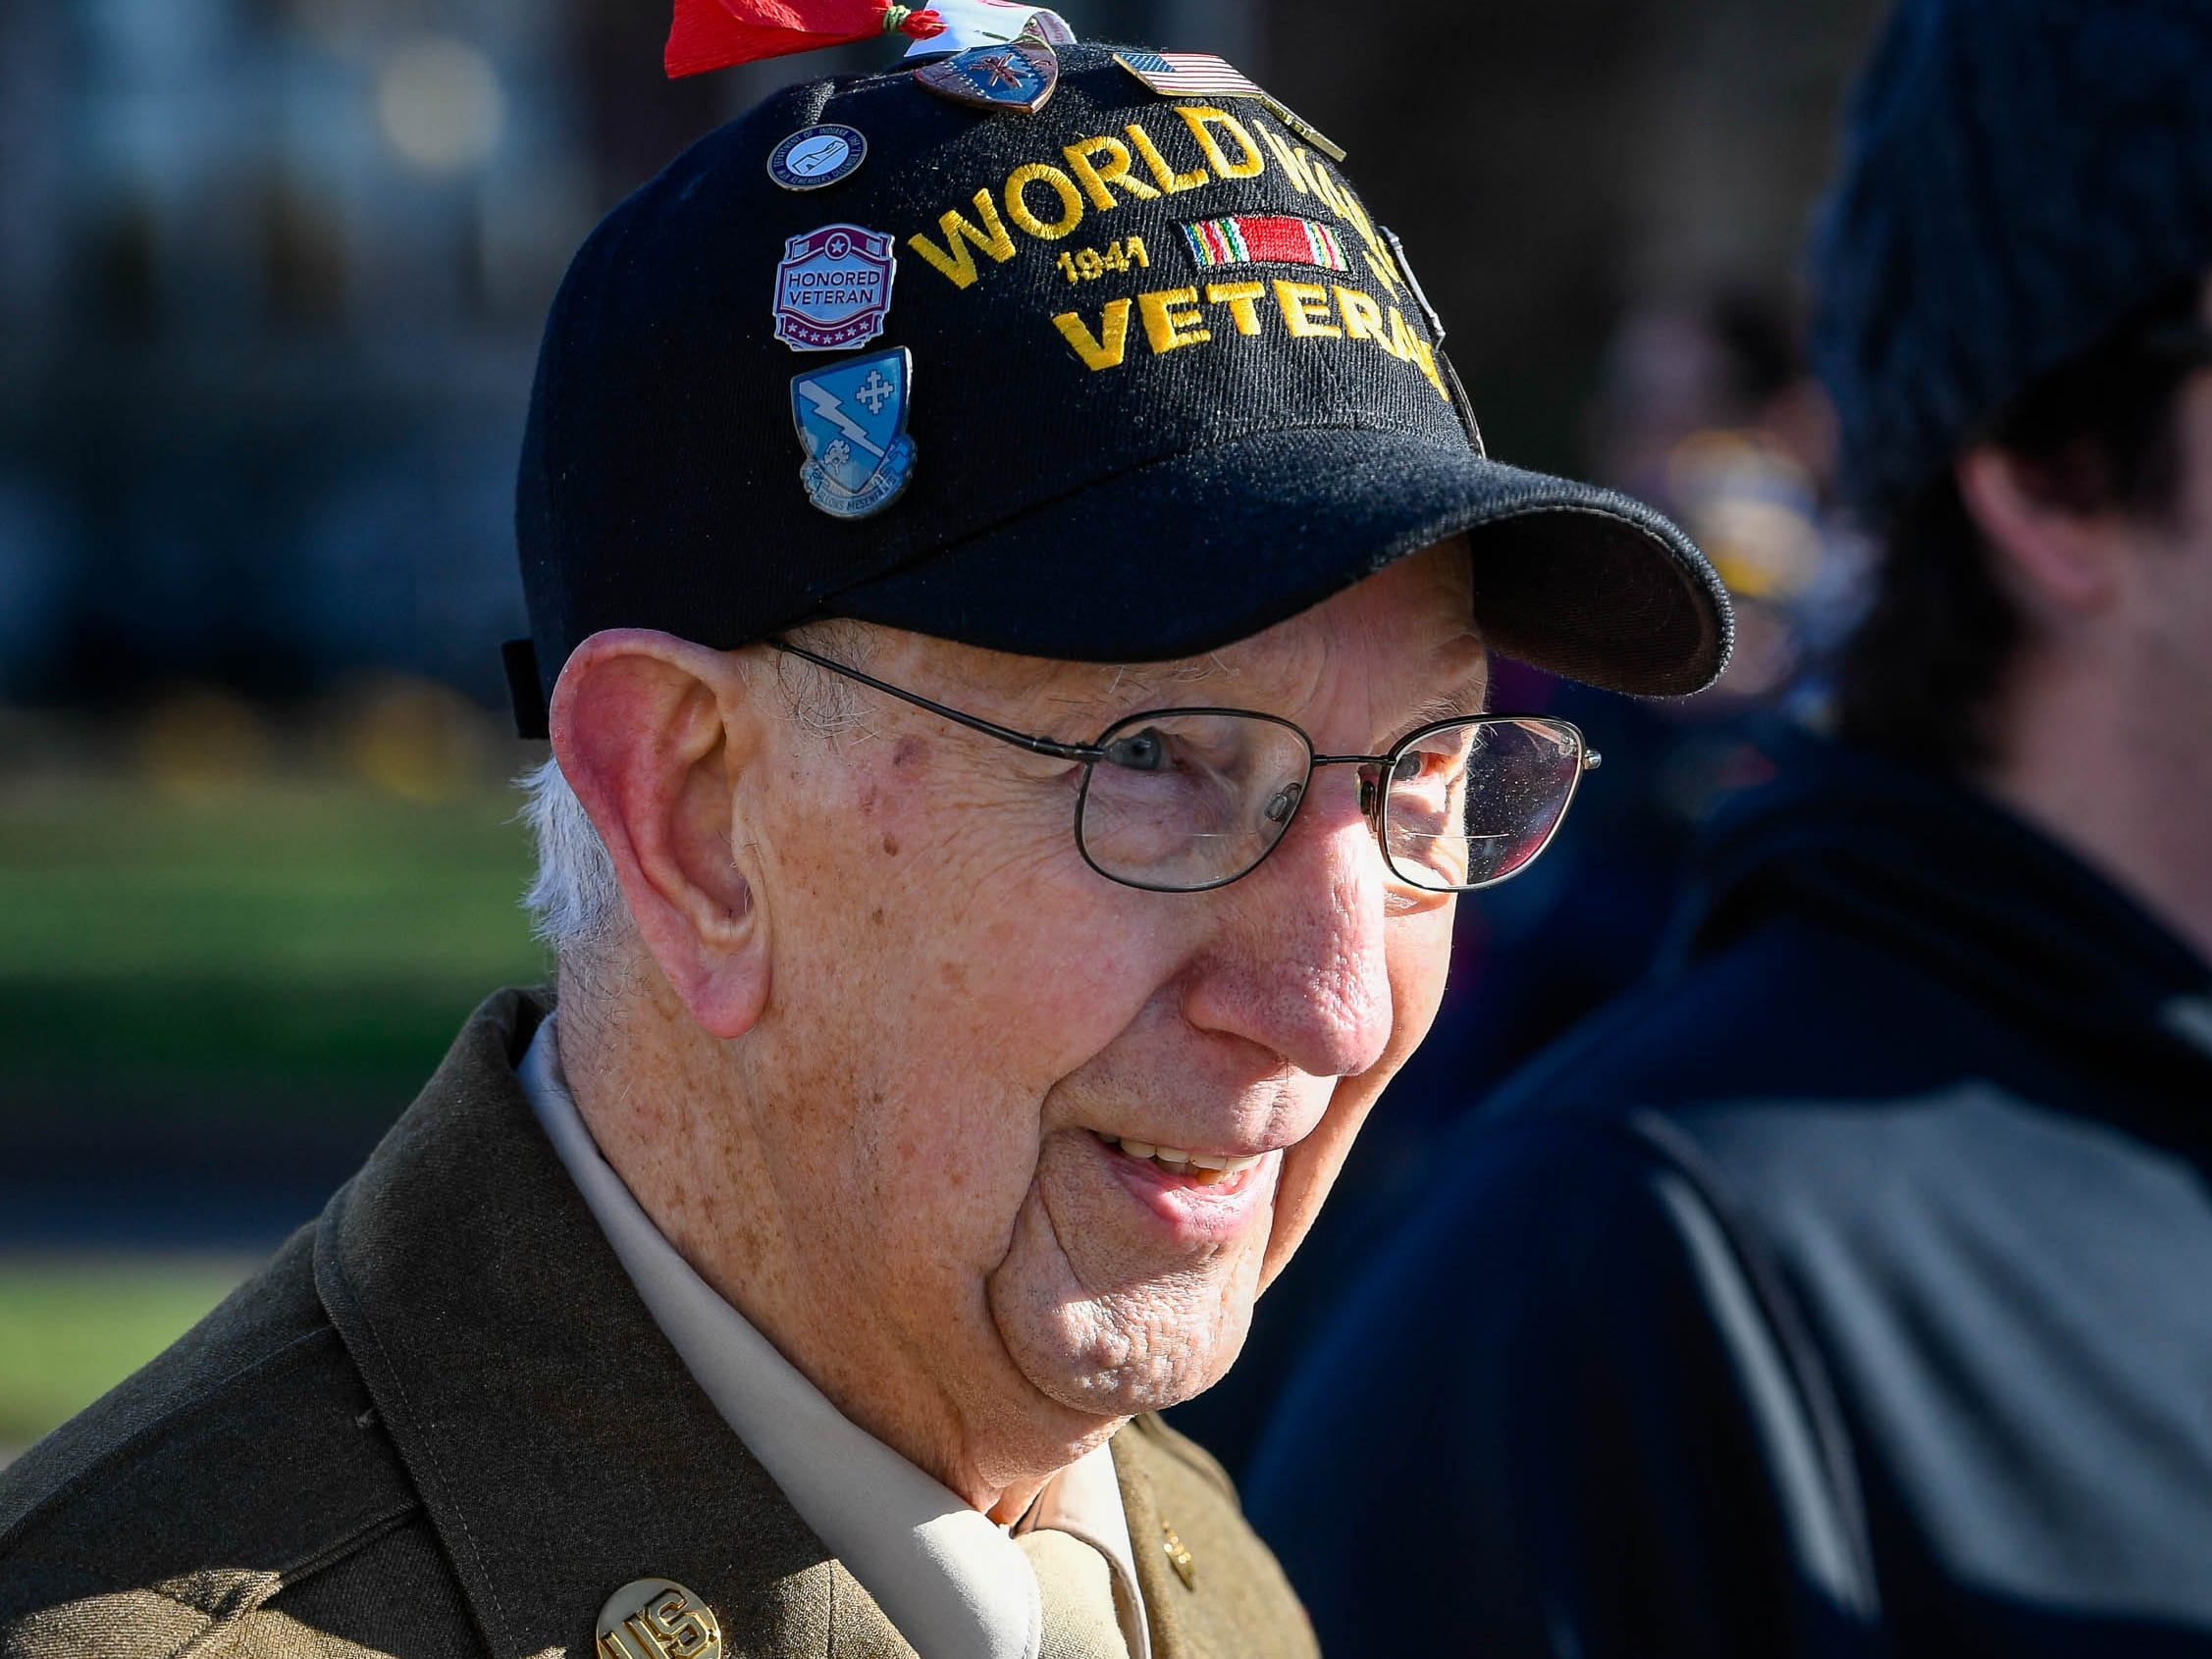 World War II veteran Marvin L. Sue of Evansville at the annual Four Freedoms Veterans Parade on Evansville's West Franklin Street Saturday, November 10, 2018.